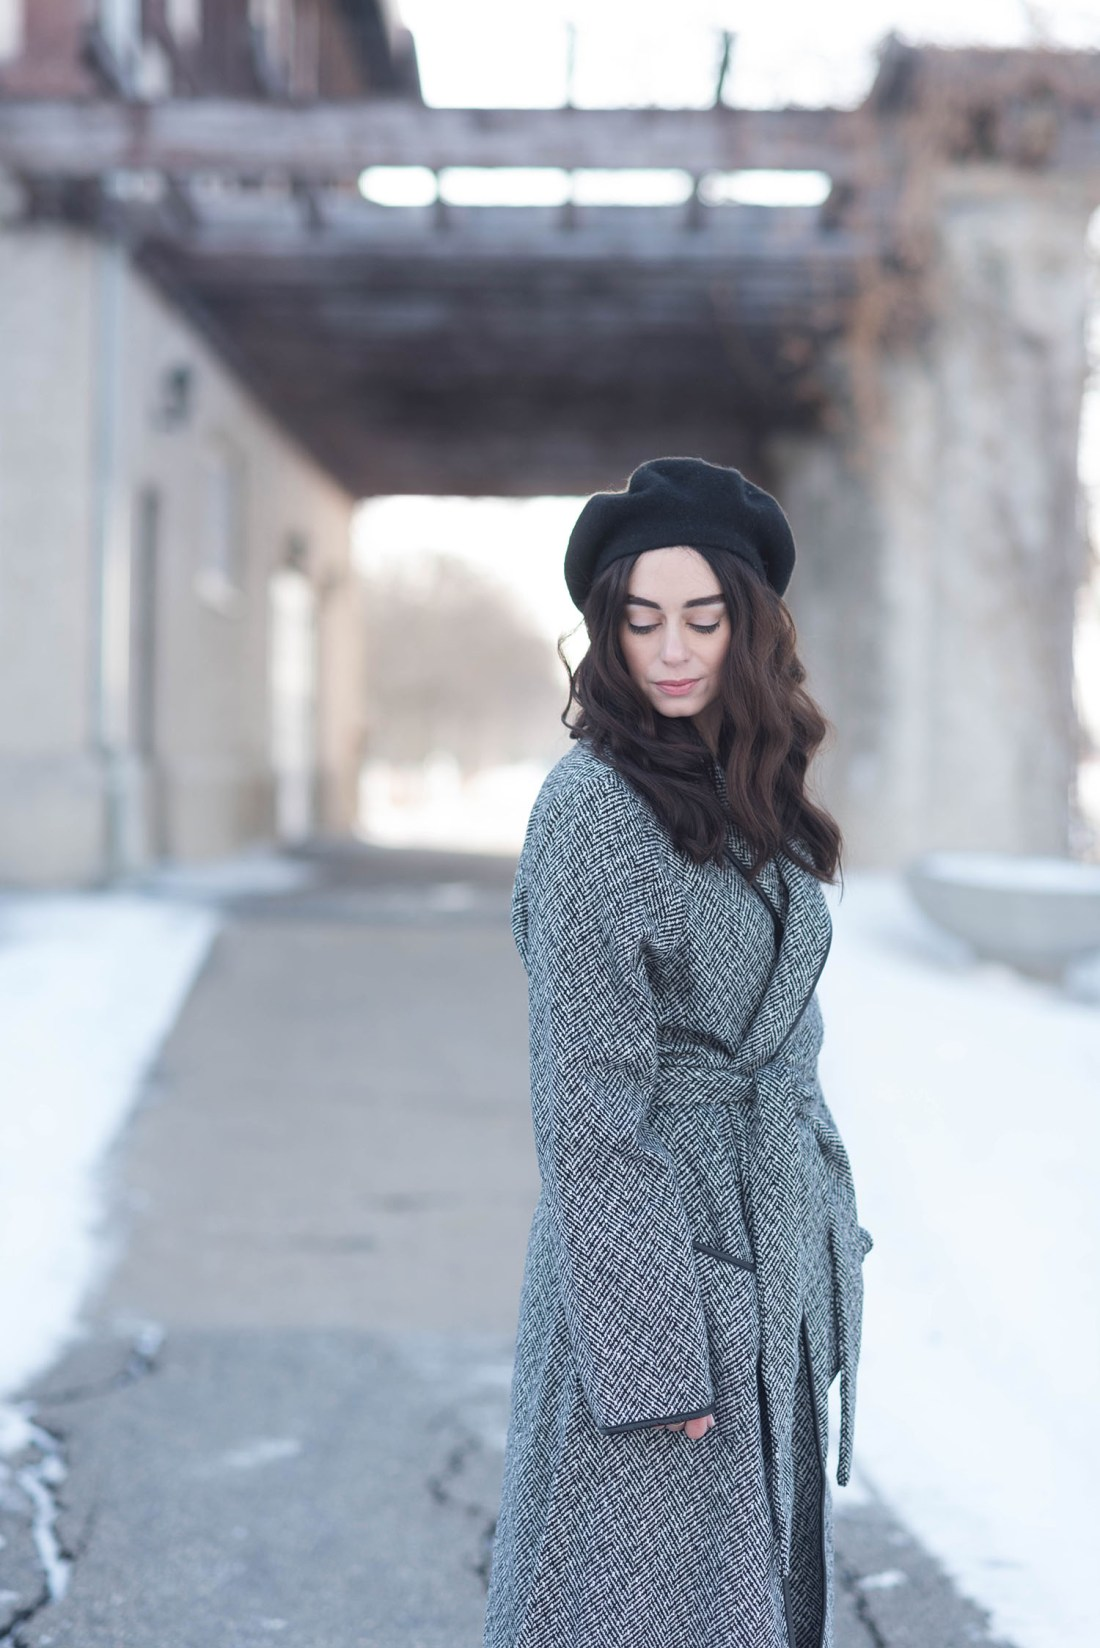 Portrait of Canadian fashion blogger Cee Fardoe of Coco & Vera, wearing an Anthropologie Bonnie beret and Lovers + Friends Monica coat